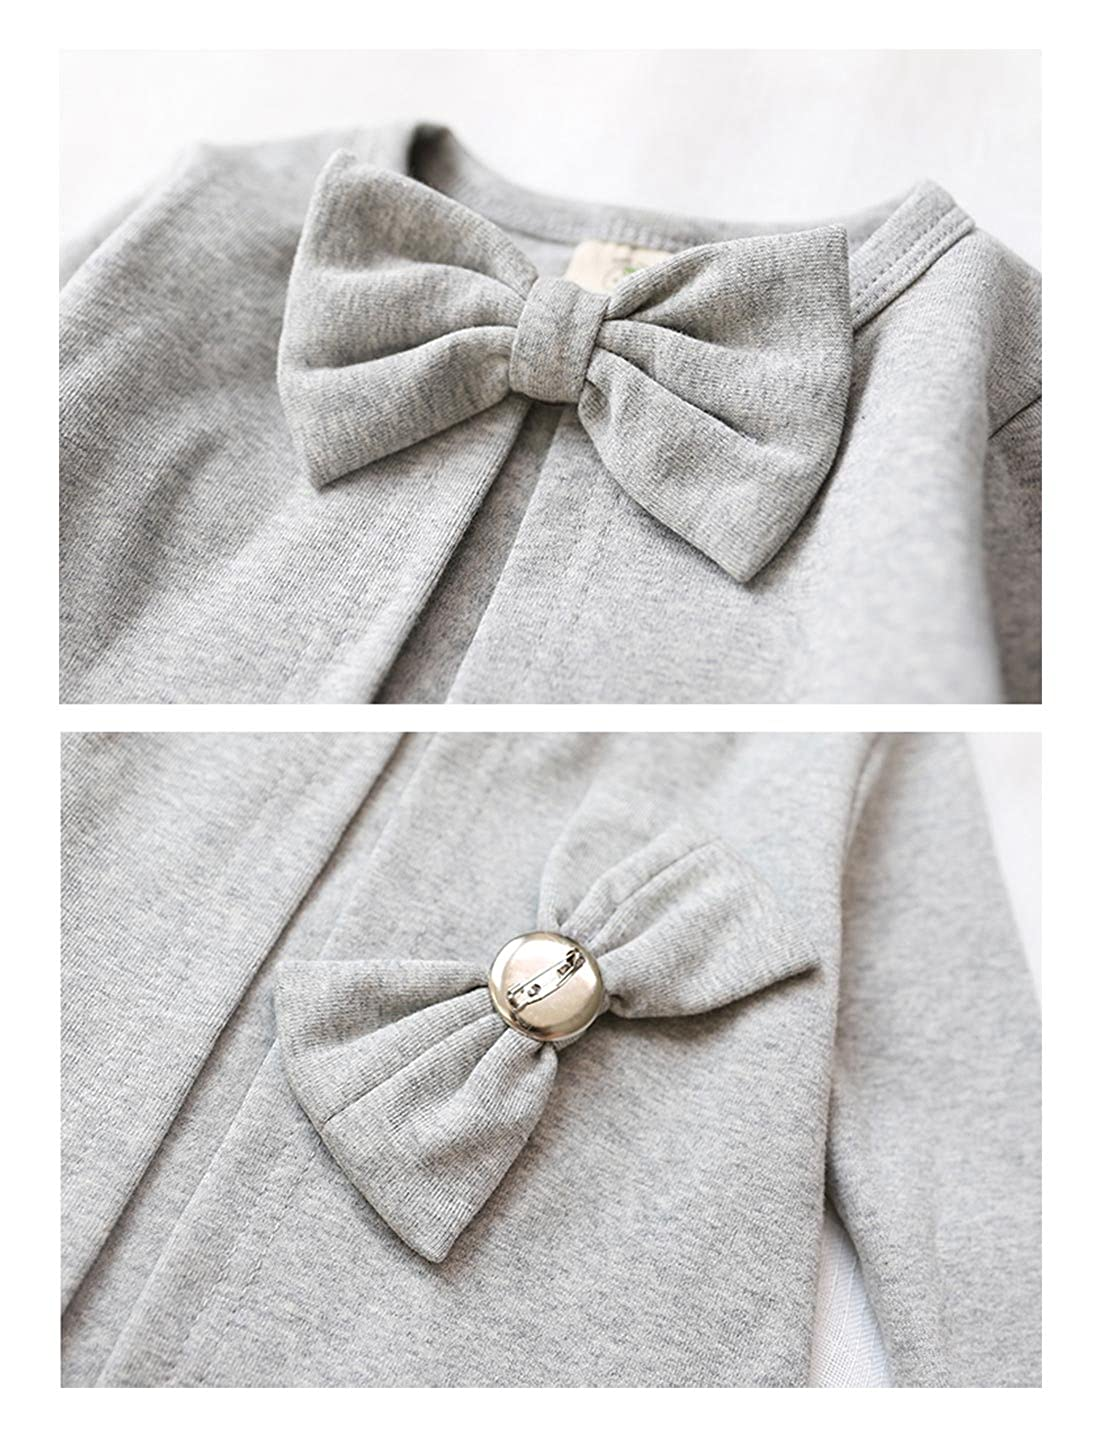 Kacakid 100/% Cotton Winter Outerwear Cardigan Style Cute Bowknot Outerwear Coat